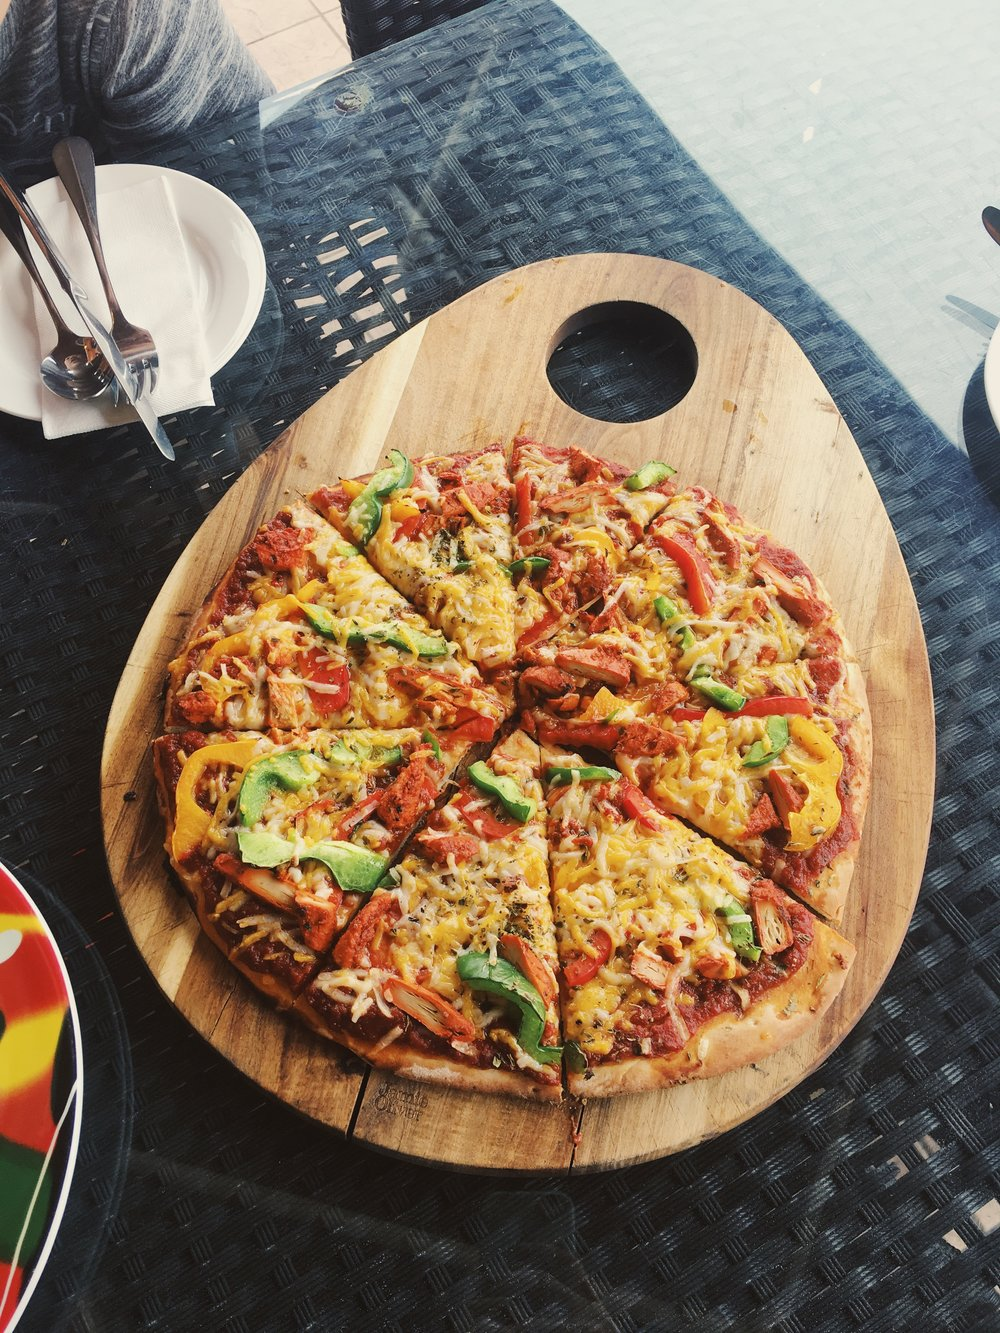 Chick'n Tikka Pizza - this photo is now published on Hemingway's menu!